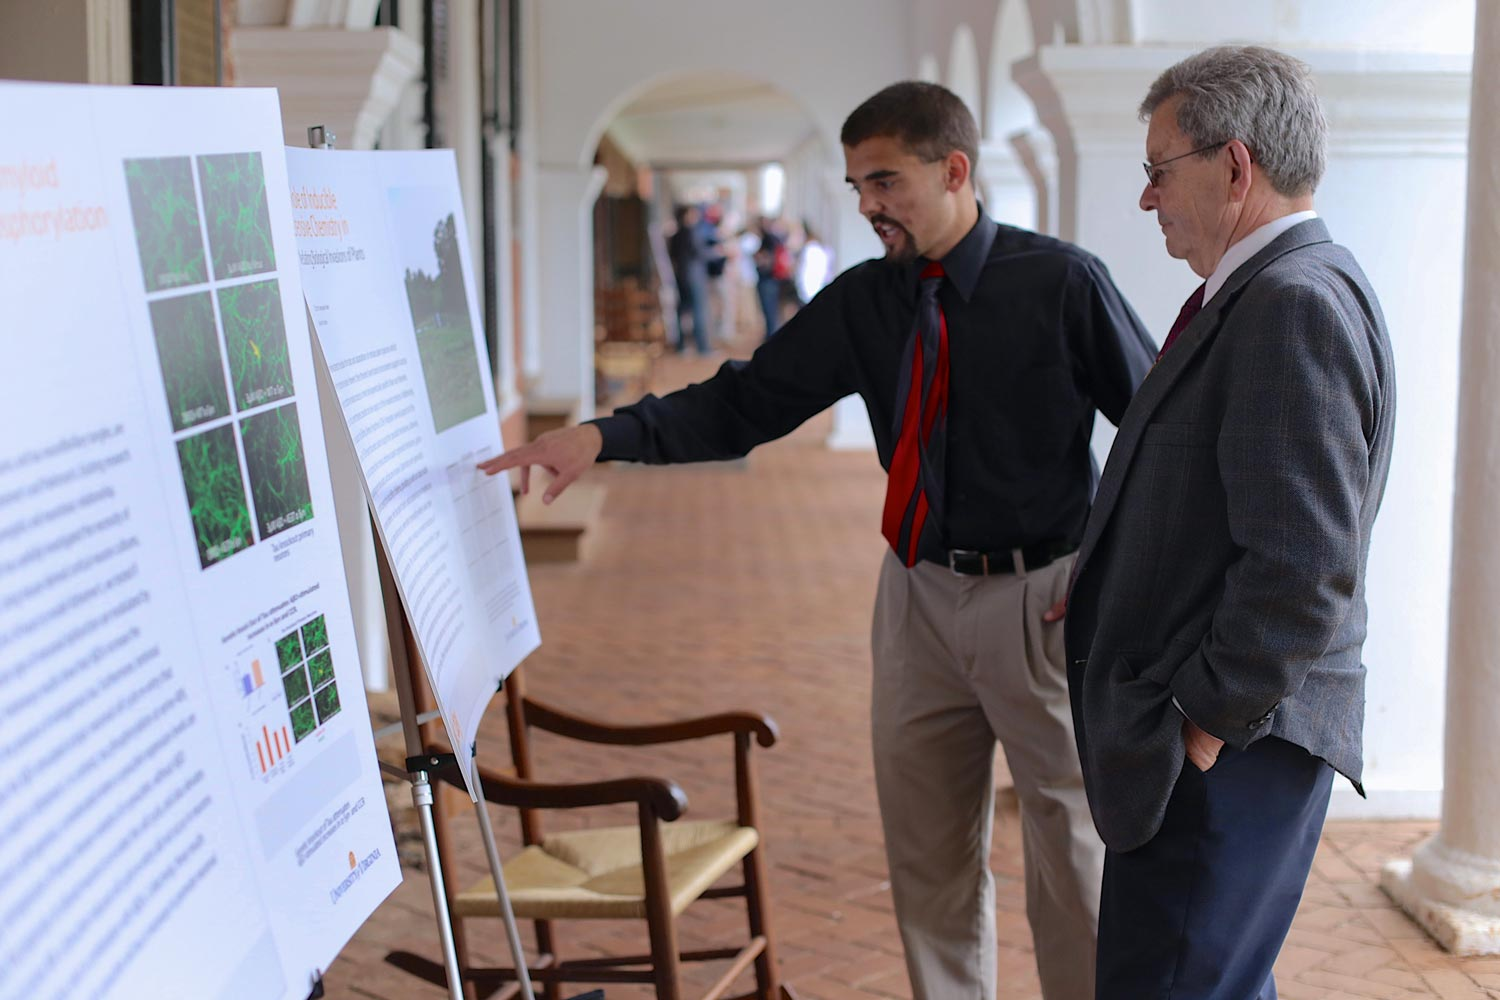 Phil Parrish, right, examining a research poster on display on the Lawn.